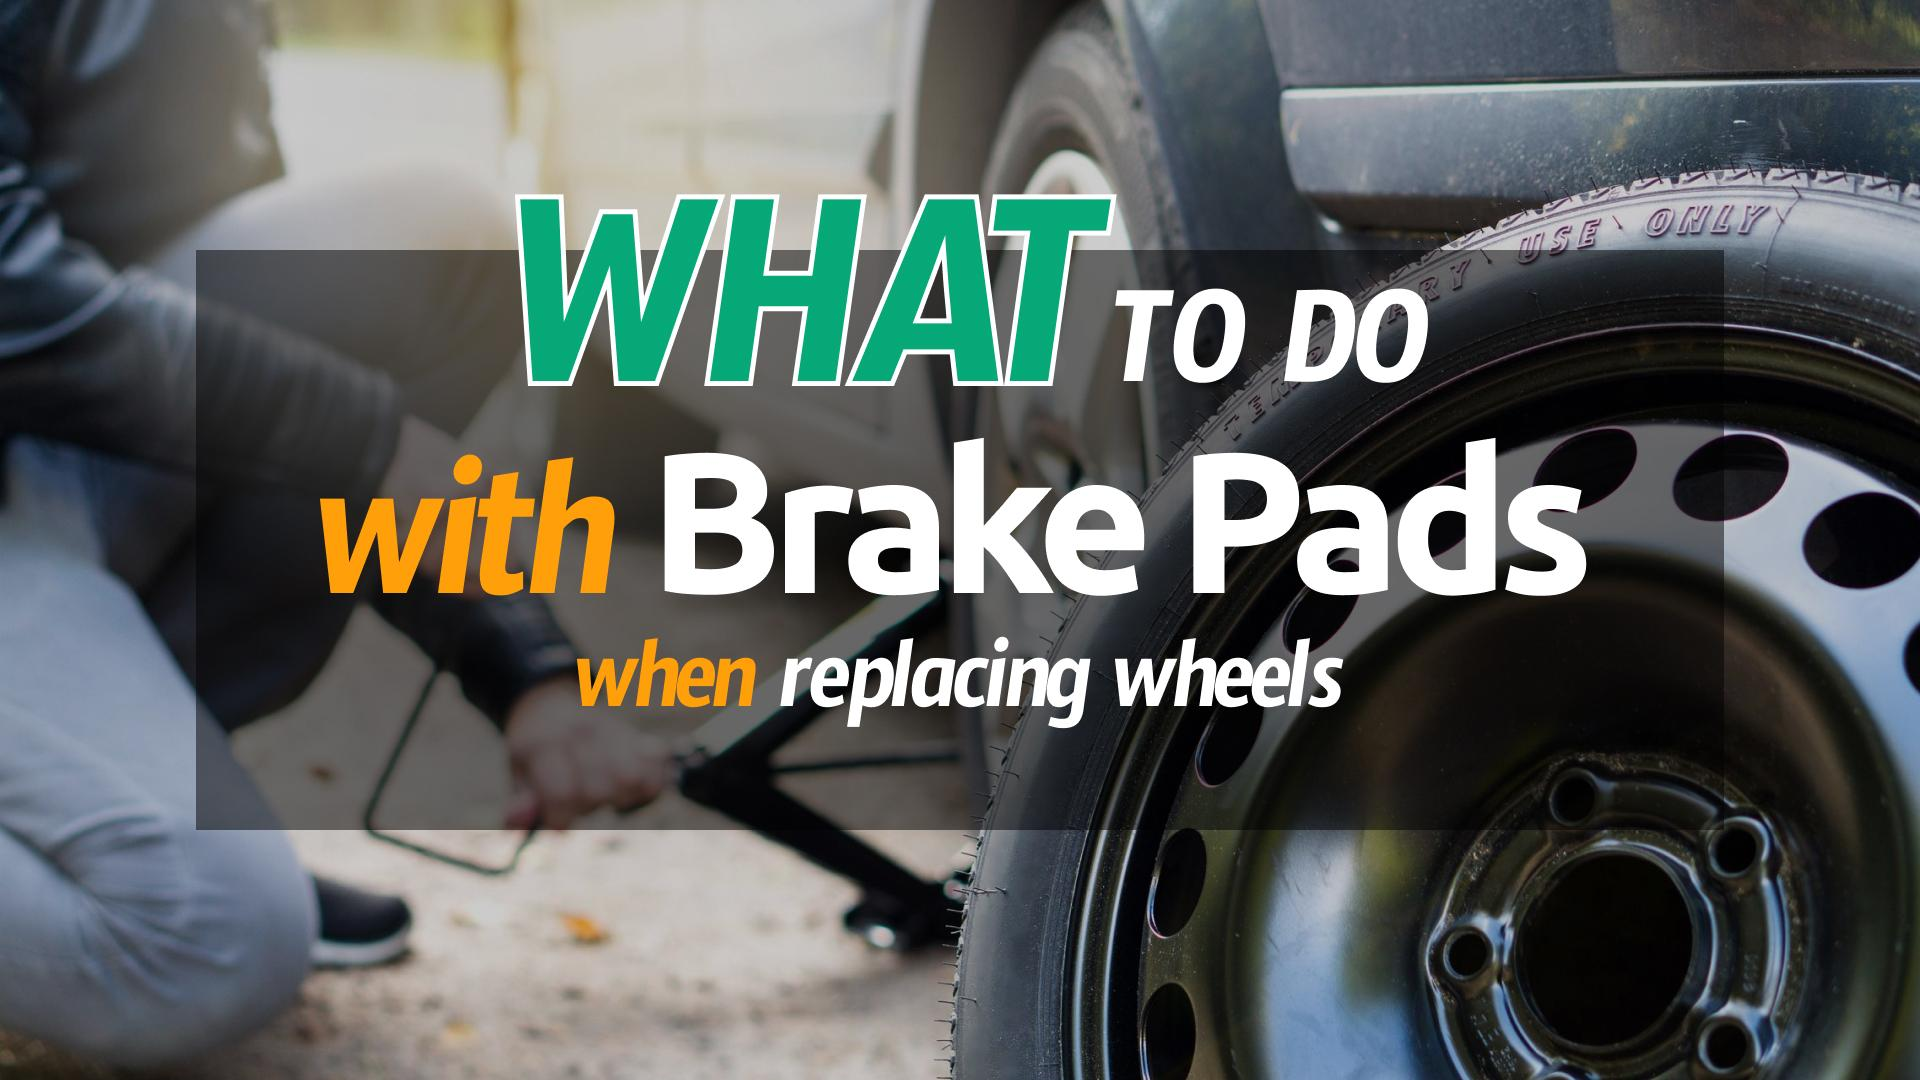 What to do with brake pads when replacing wheels: image